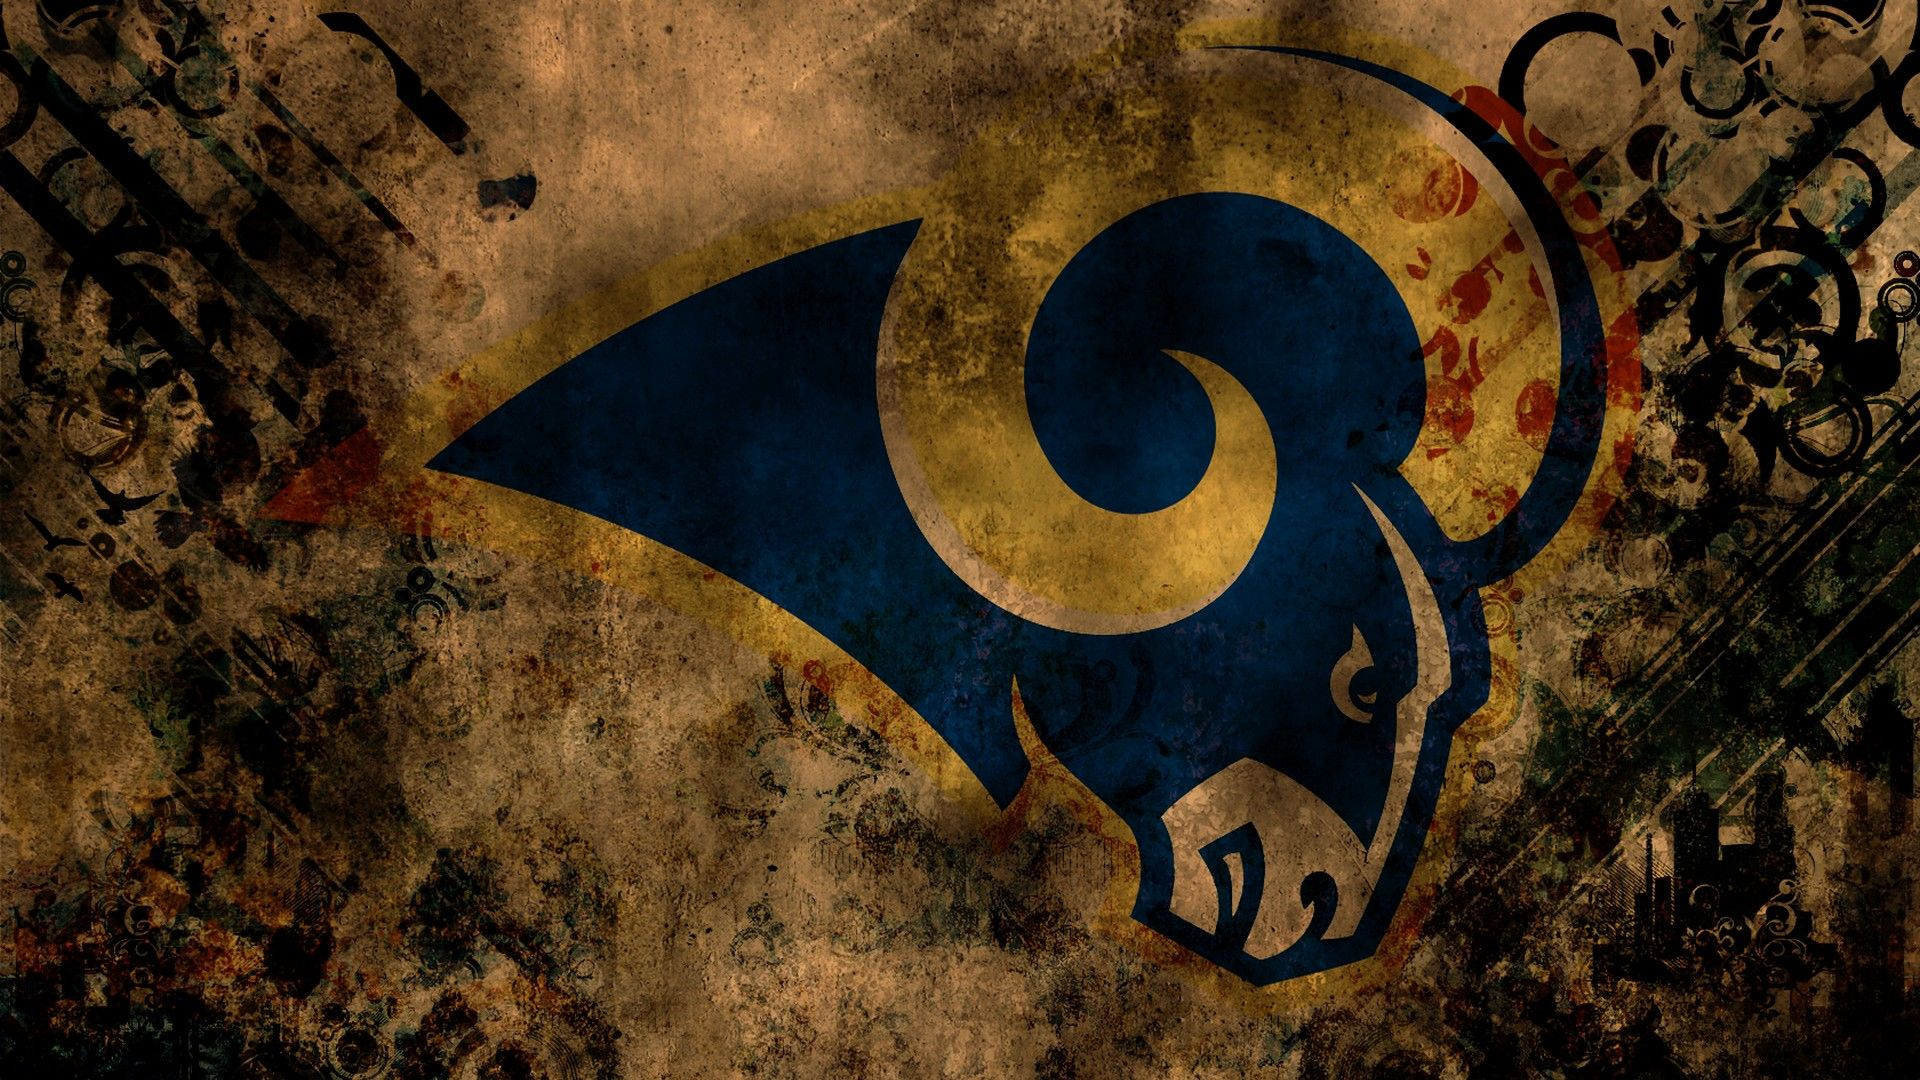 Los Angeles Rams Desktop Wallpaper 2021 Nfl Football Wallpapers St Louis Rams Best Wallpaper Hd Nfl Football Wallpaper